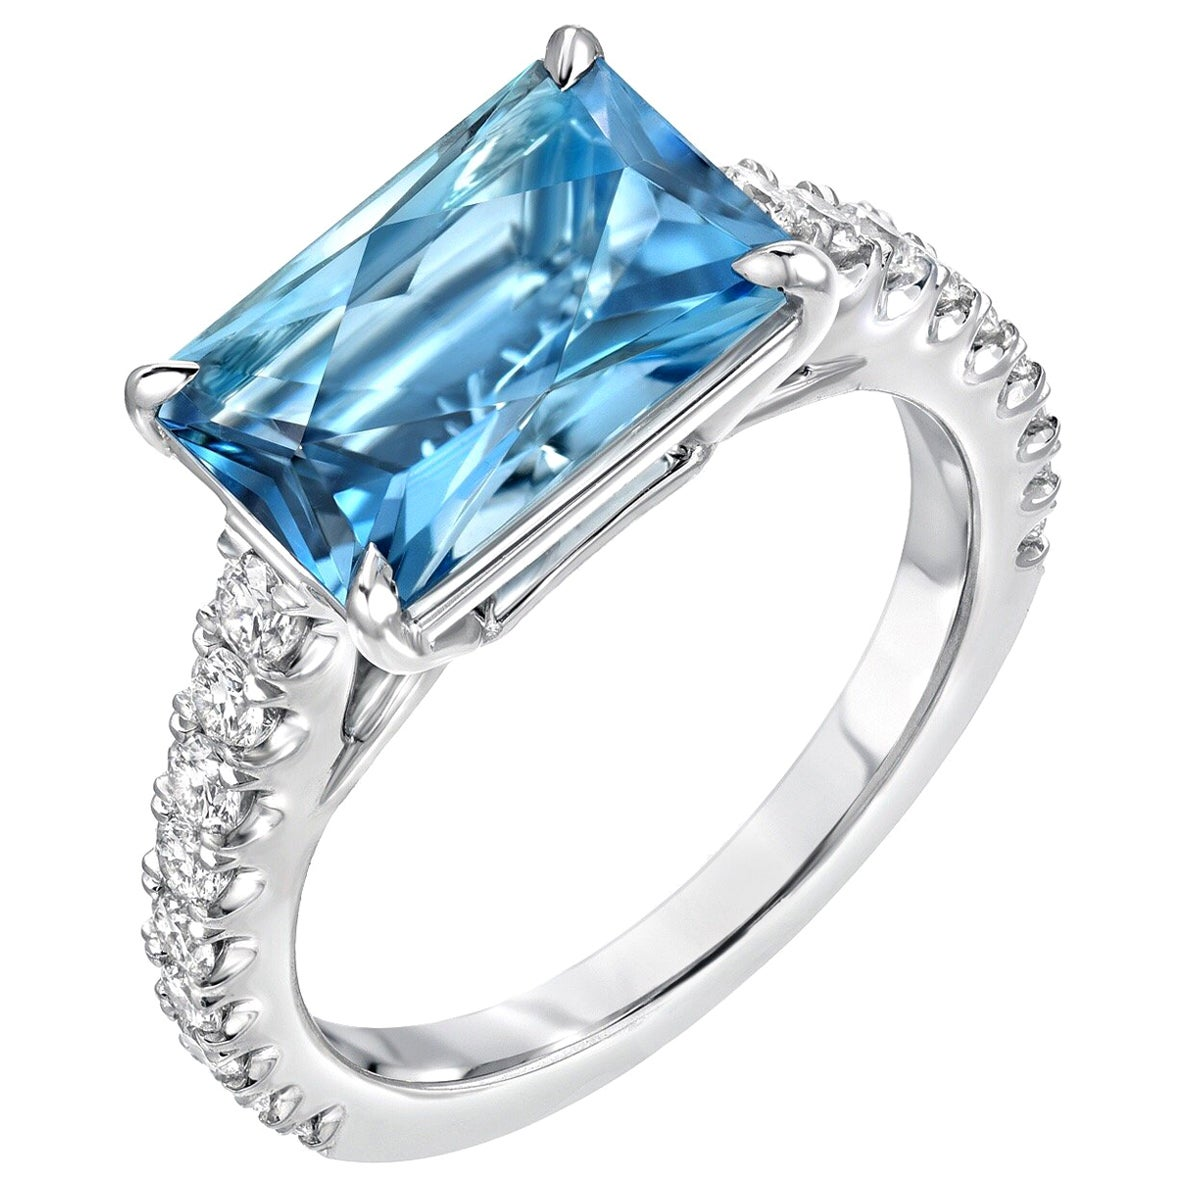 Aquamarine Ring 2.59 Carats Emerald Cut